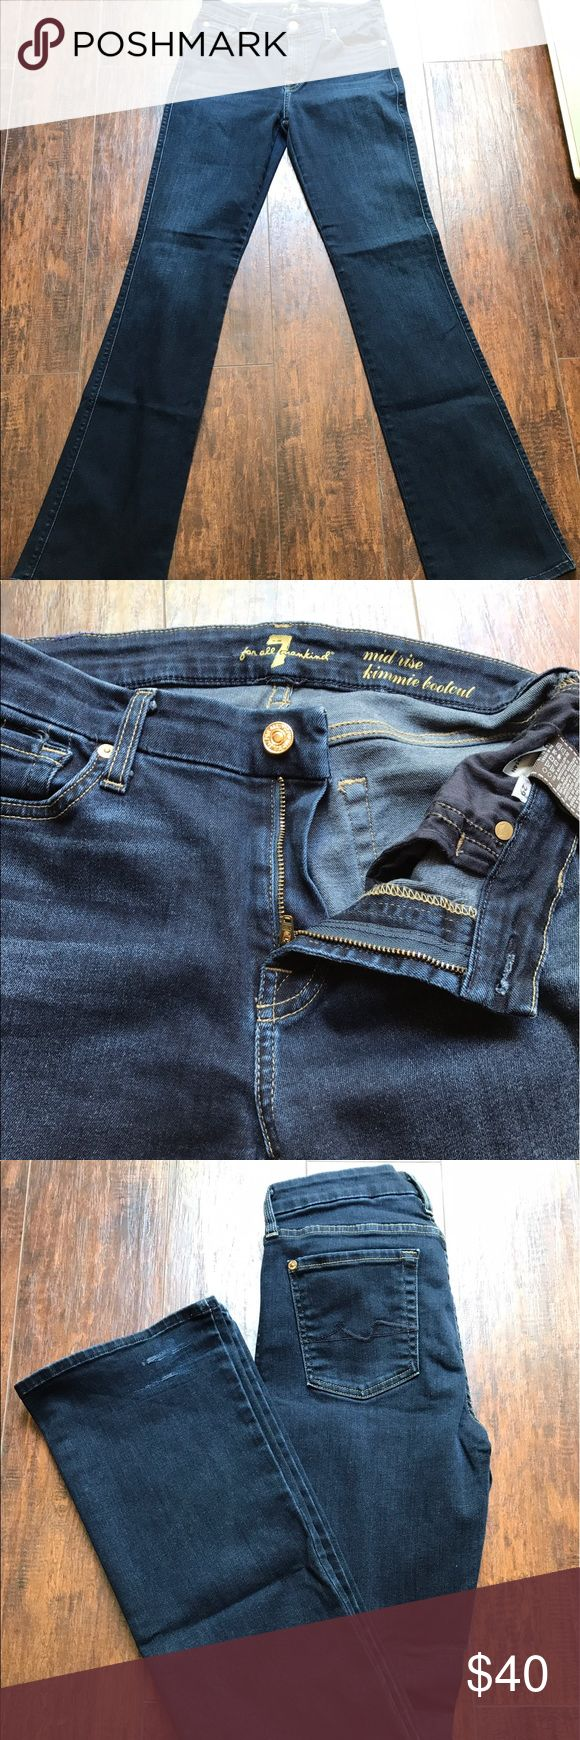 7 For All Mankind Kimmie Bootcut Jeans Great condition! Mimi's Boot Cut, 7 for all mankind women's jeans! 7 For All Mankind Jeans Boot Cut